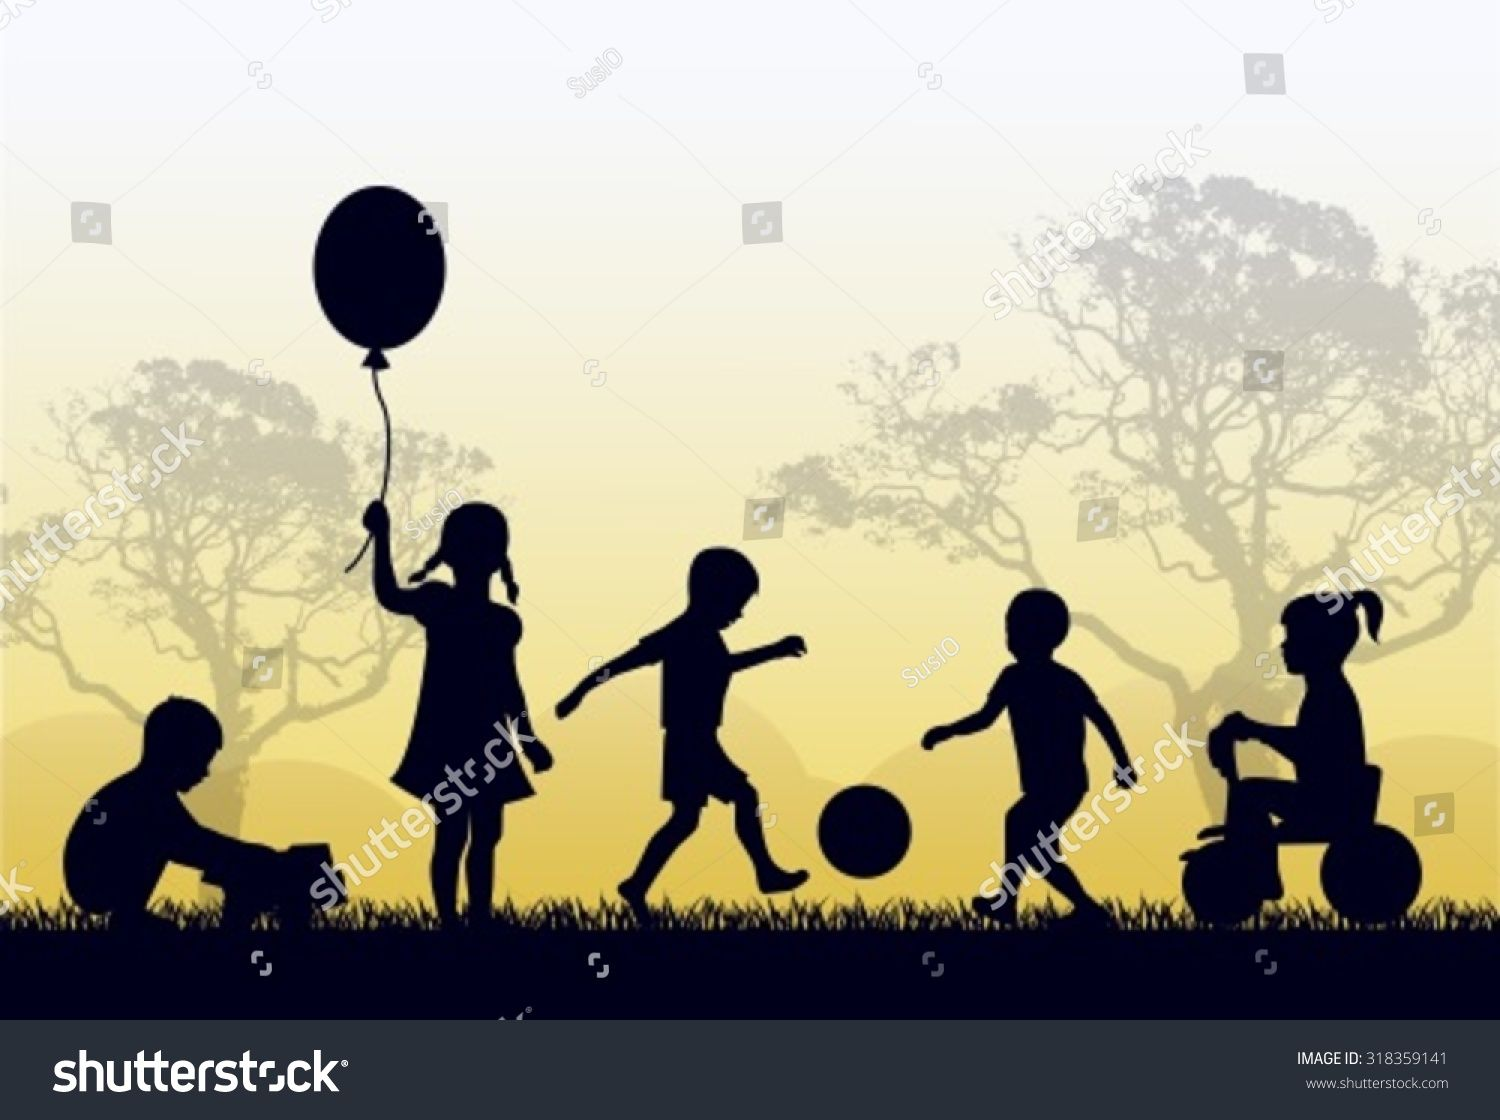 Silhouettes of children playing outside in the grass and.